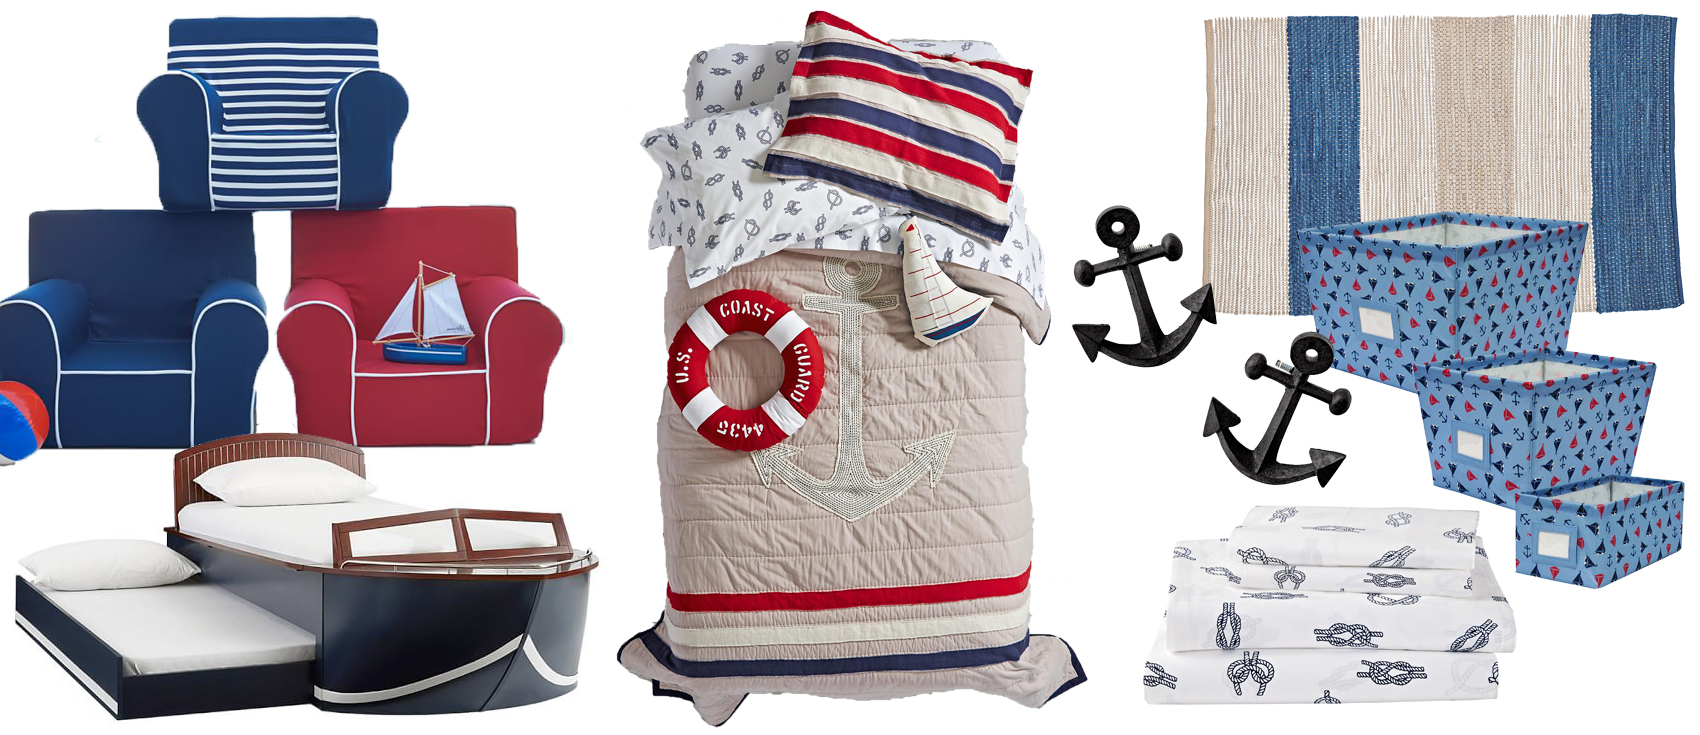 Childrens Nautical Bedroom Accessories Zef Jam